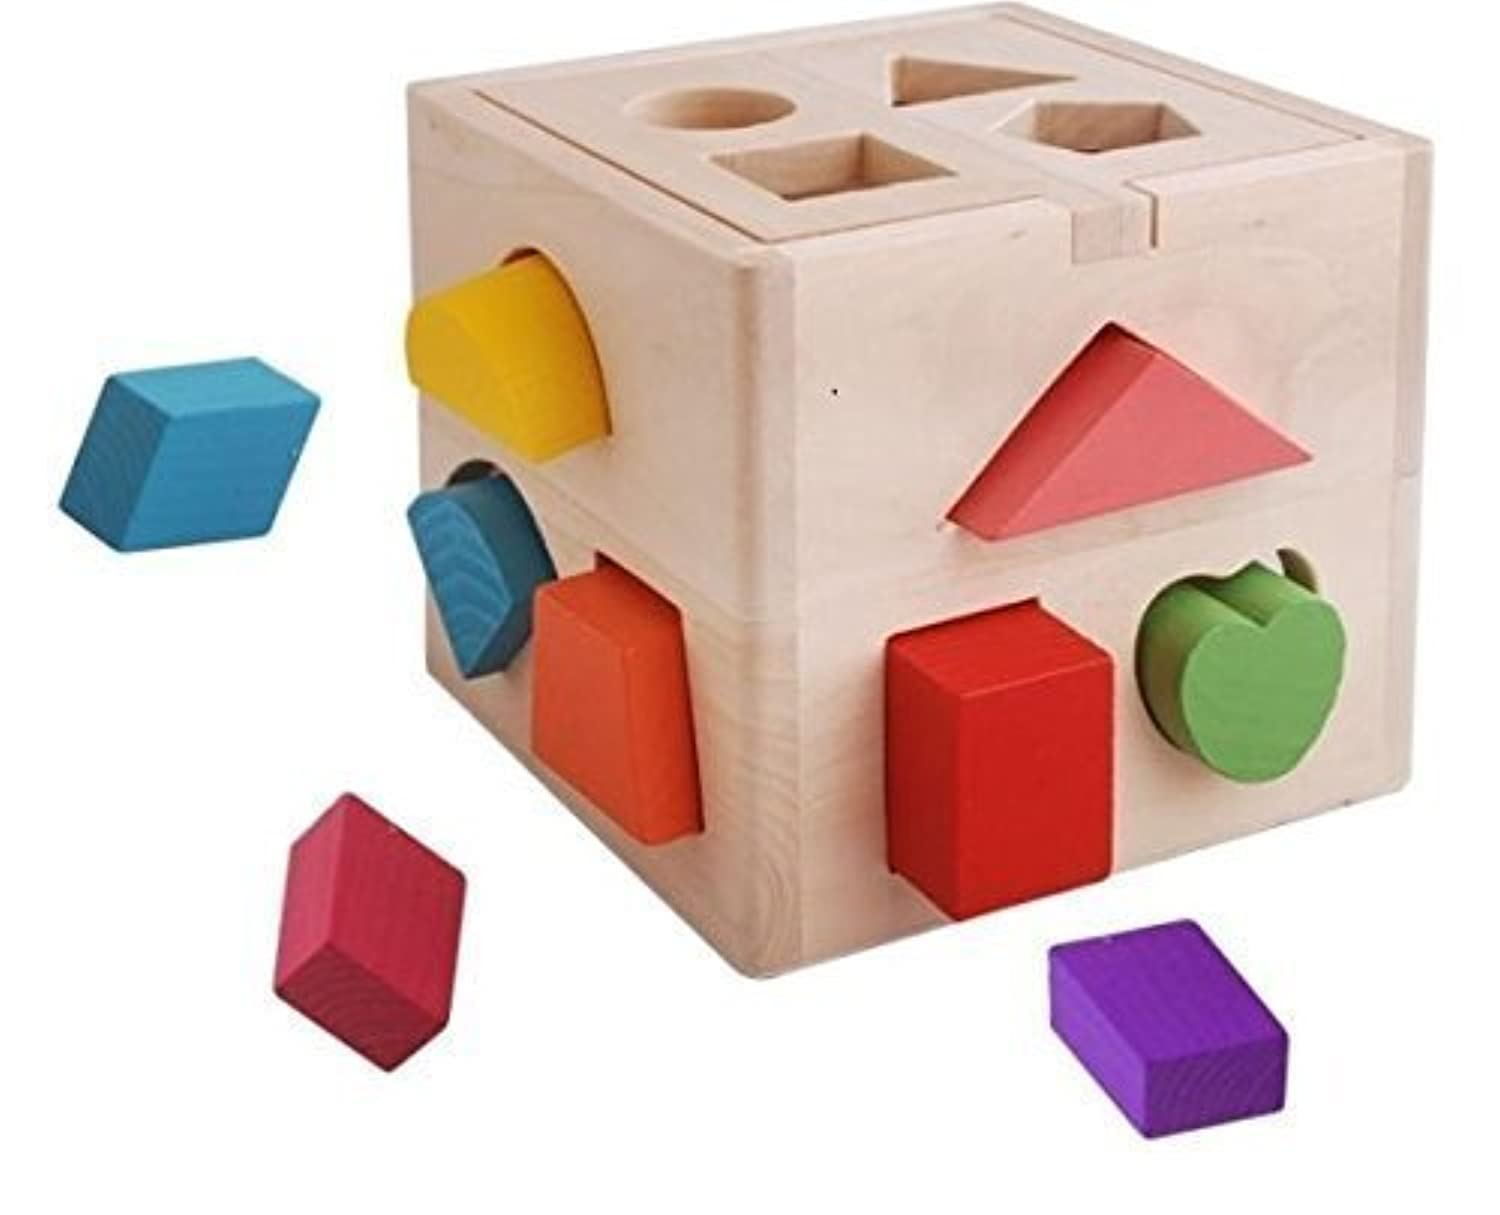 13 Hole Intelligence Cube for Shape Sorter Cognitive and Matching Wooden Blocks Toys for Baby